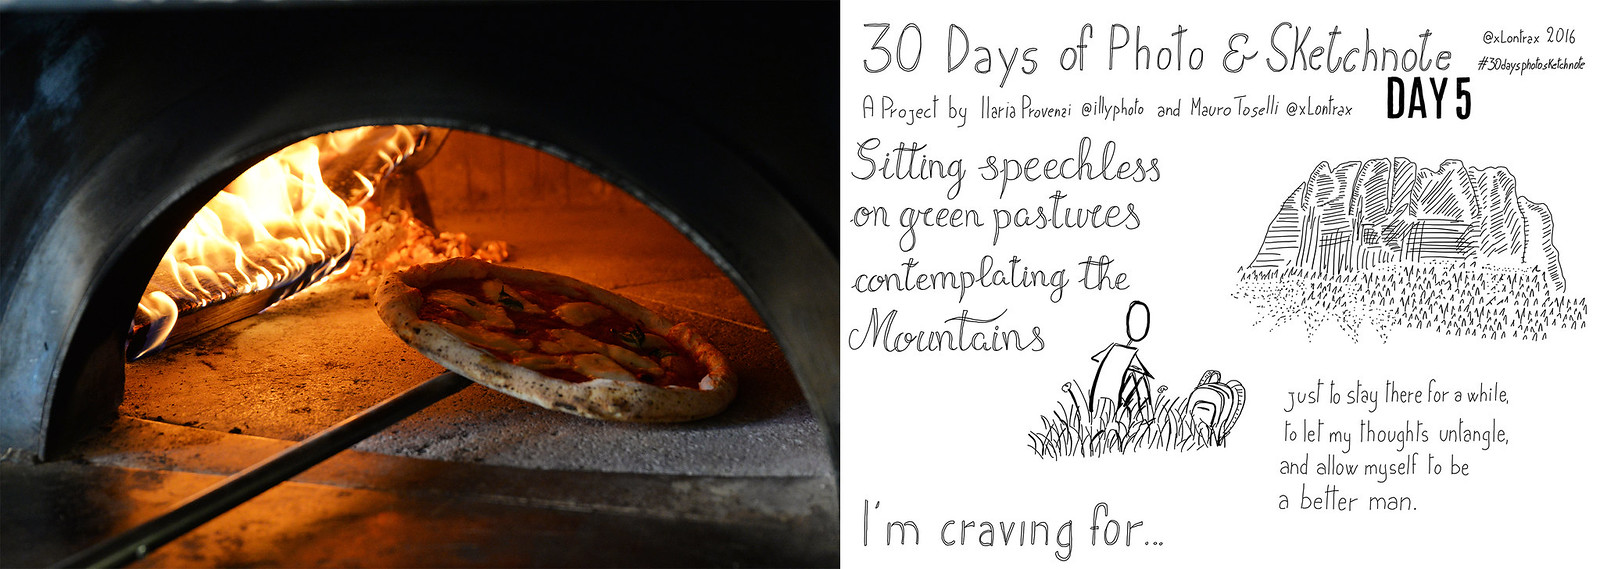 Day 05. Ho una voglia pazzesca di... - I'm really craving for...